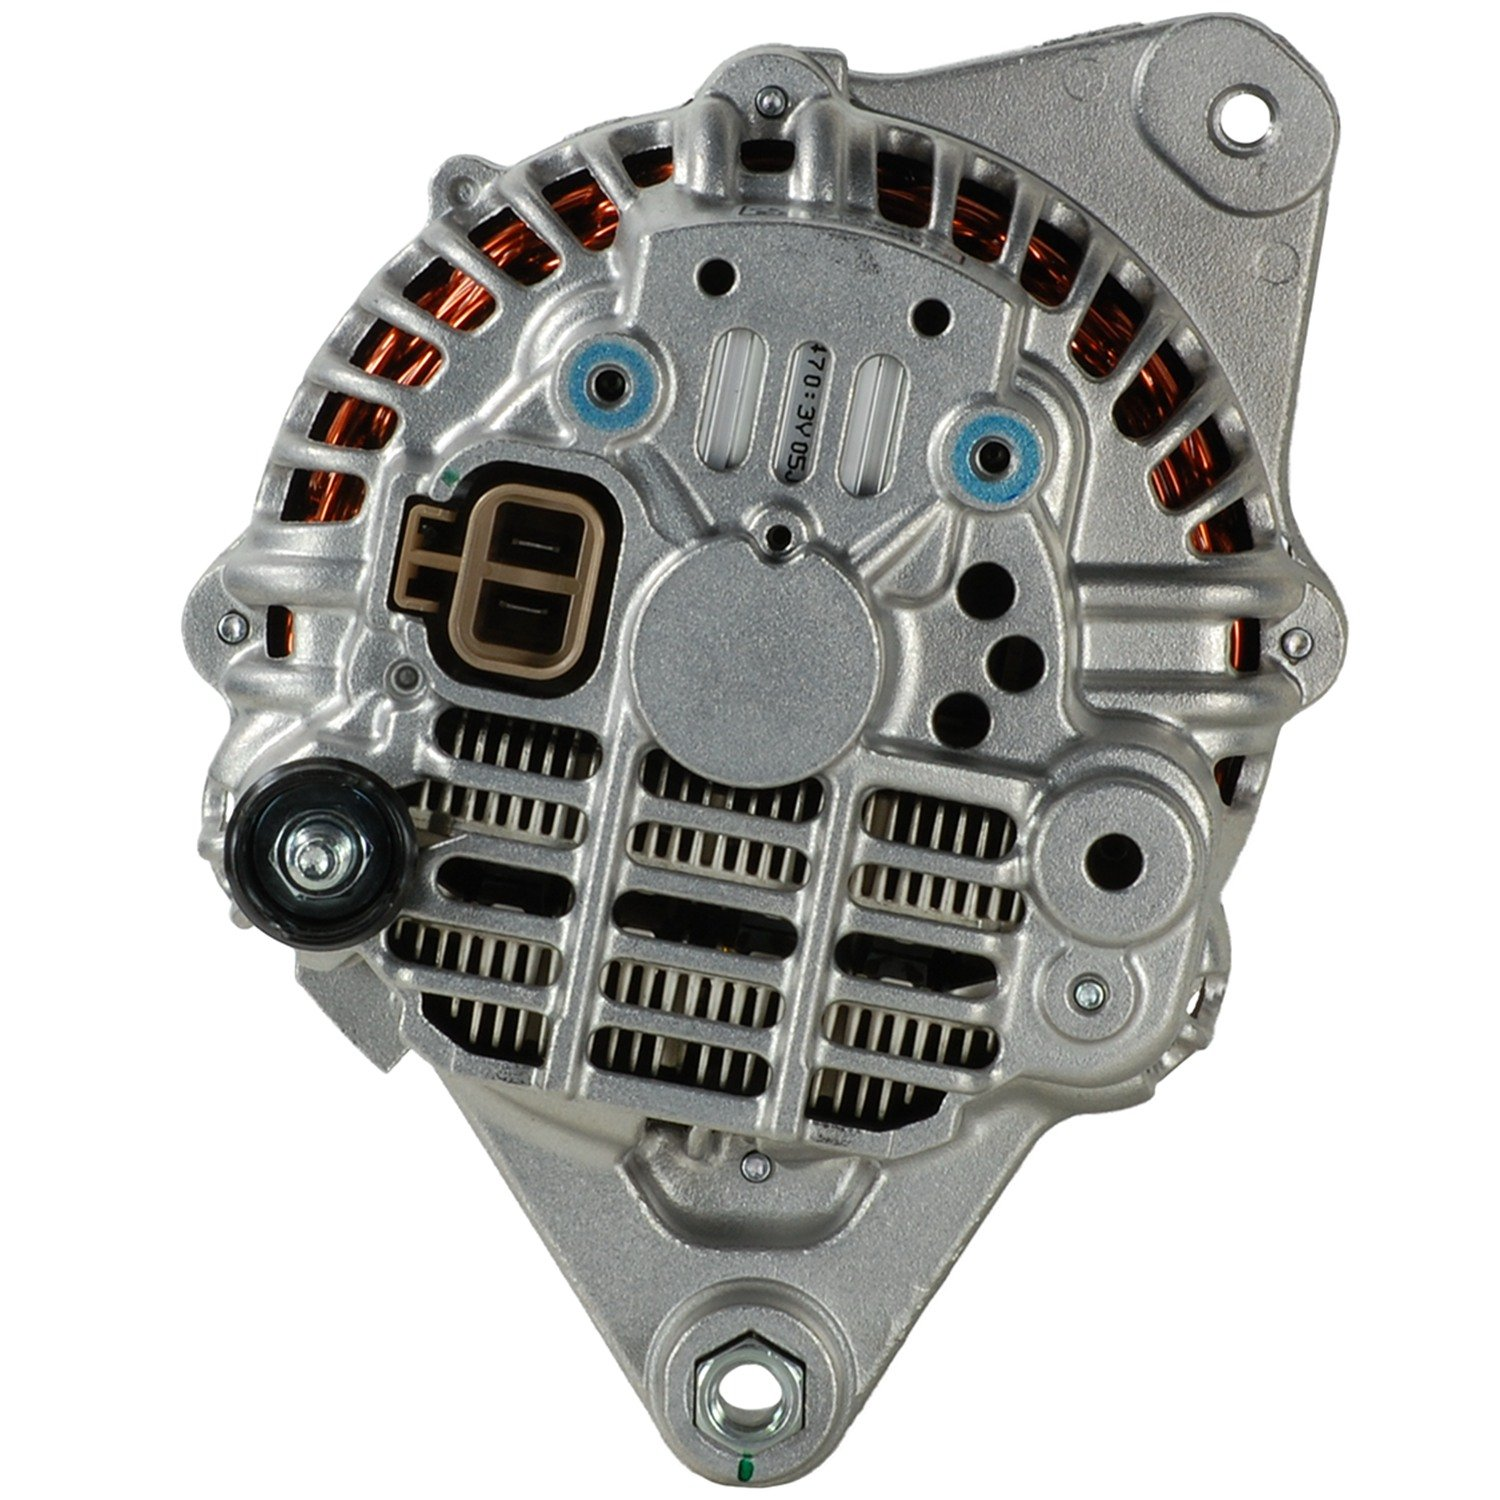 Pretty Deutz 1011f Alternator Wiring Jeep Cj Wiring Choke 1986 2 5 ...